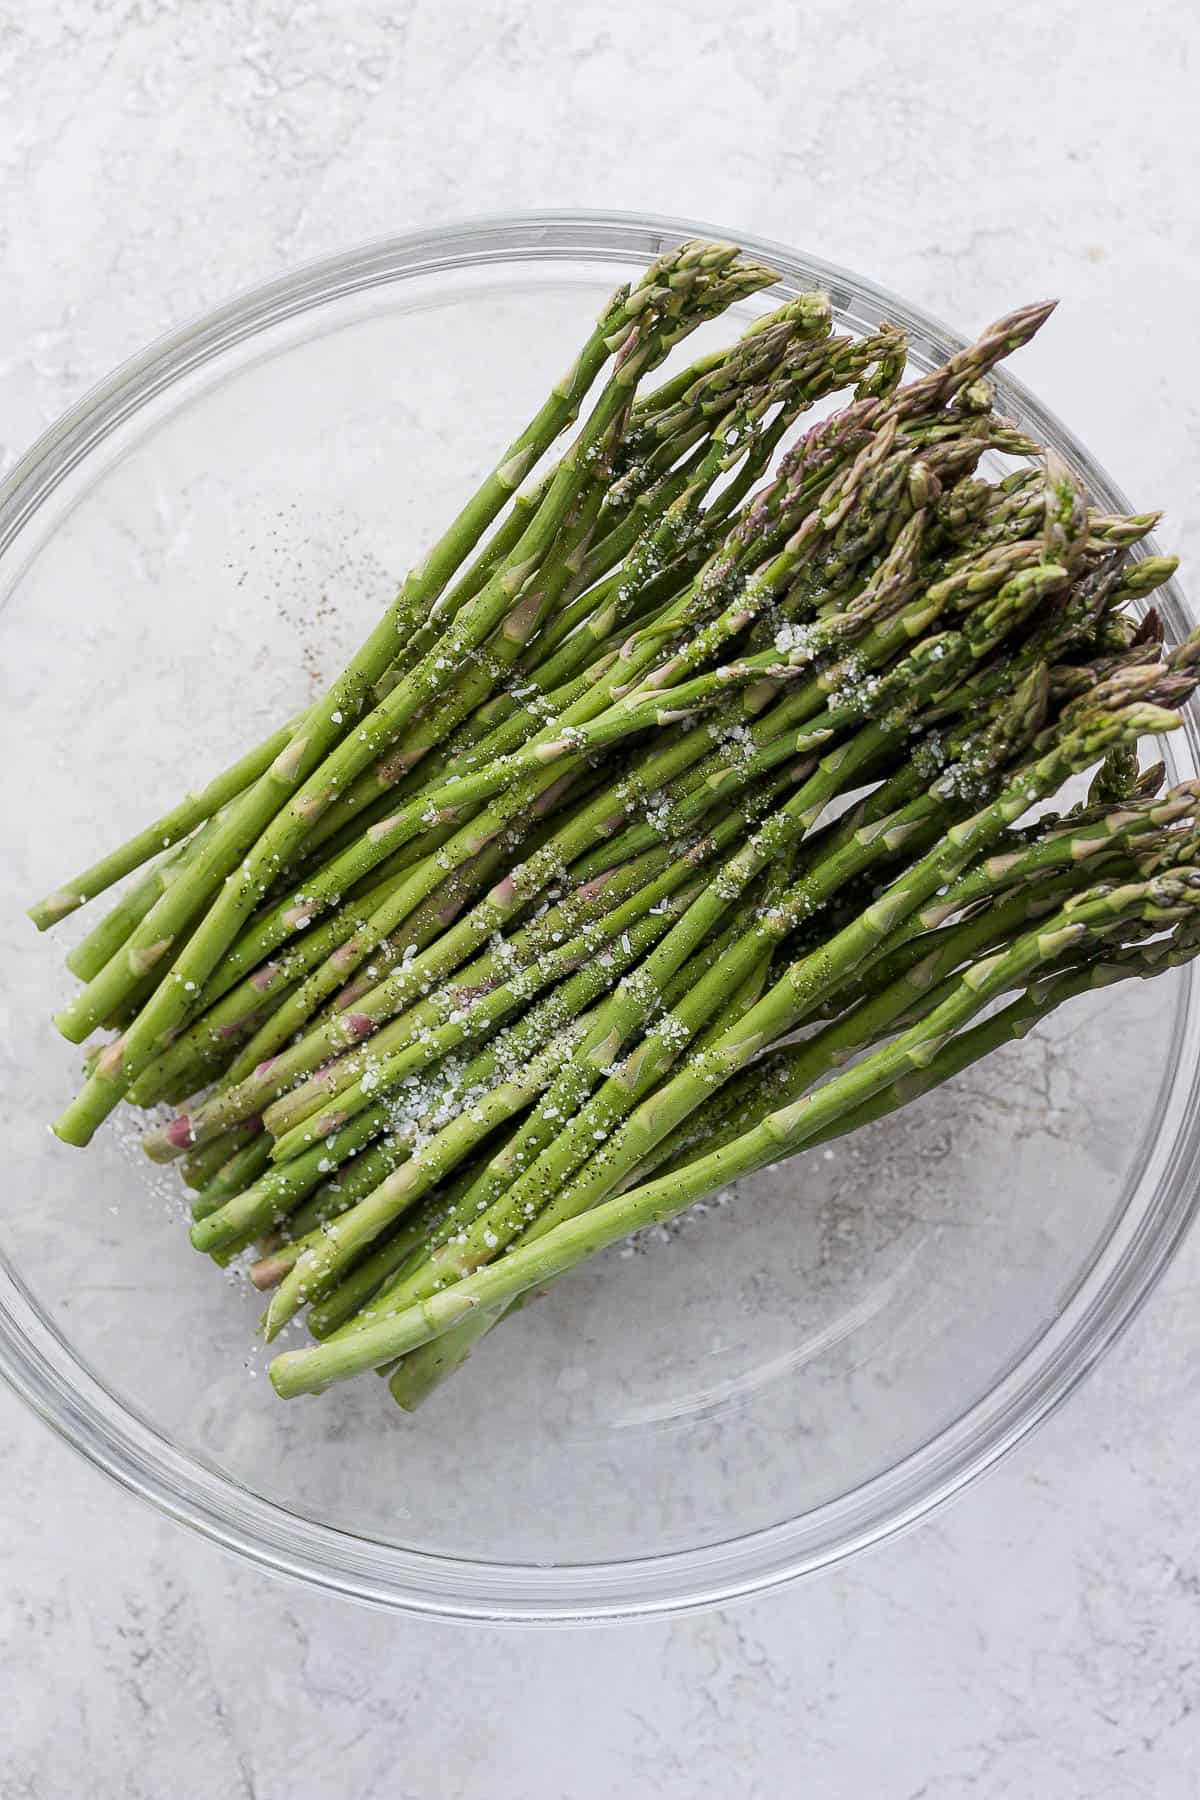 Tossing asparagus with olive oil, salt and papper